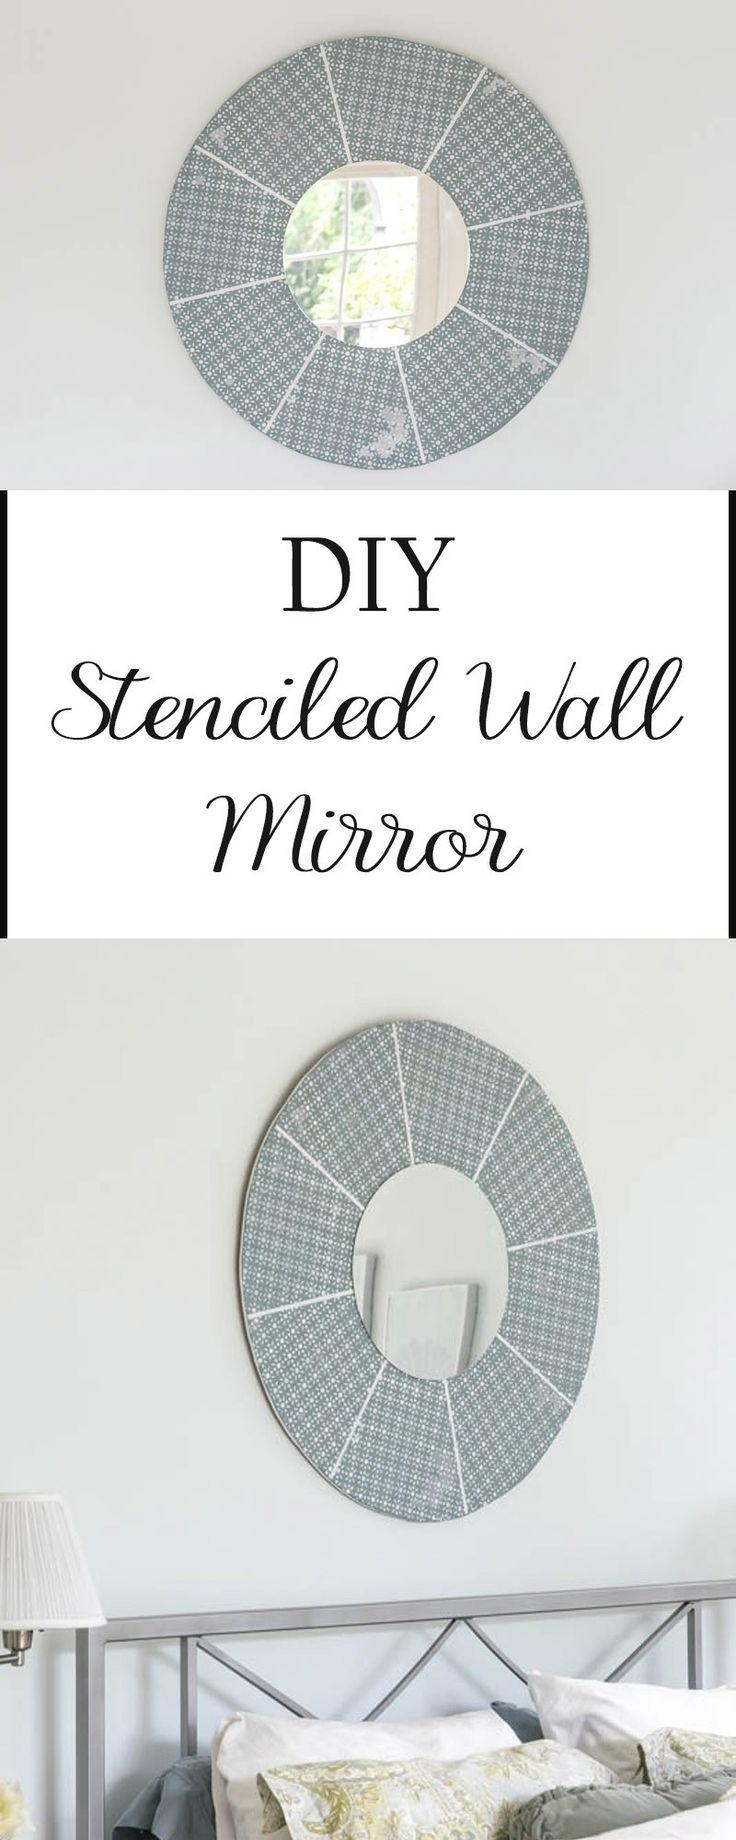 The 25+ Best Small Round Mirrors Ideas On Pinterest | Small Hall Intended For Small Round Mirrors Wall Art (Image 12 of 20)